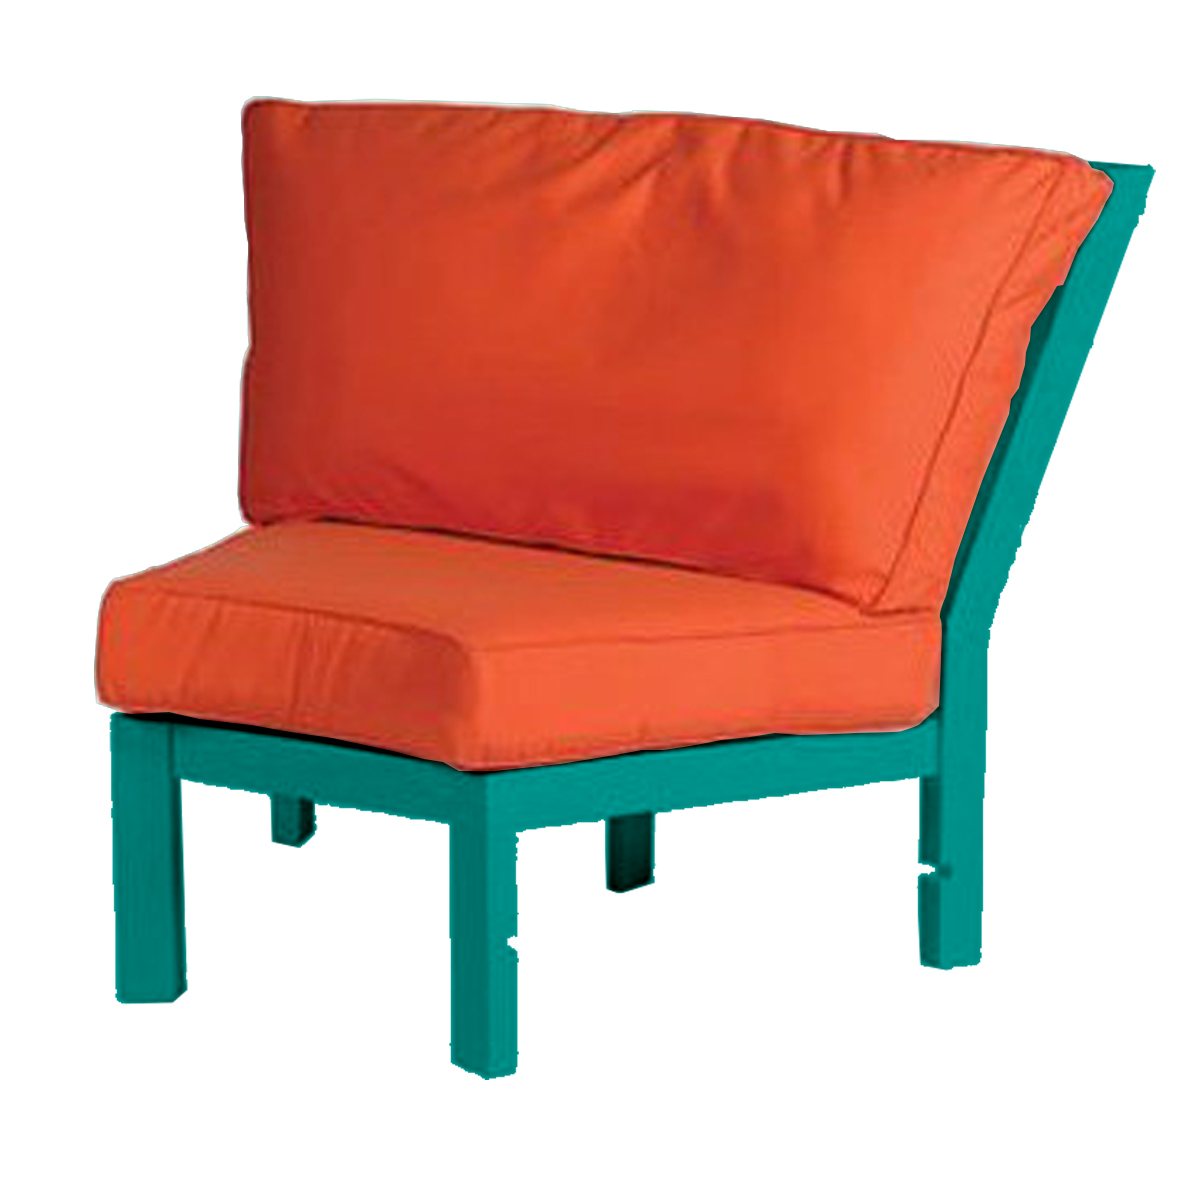 Sanibel Modular Deep Seating 45 Degree Corner Lounge Chair